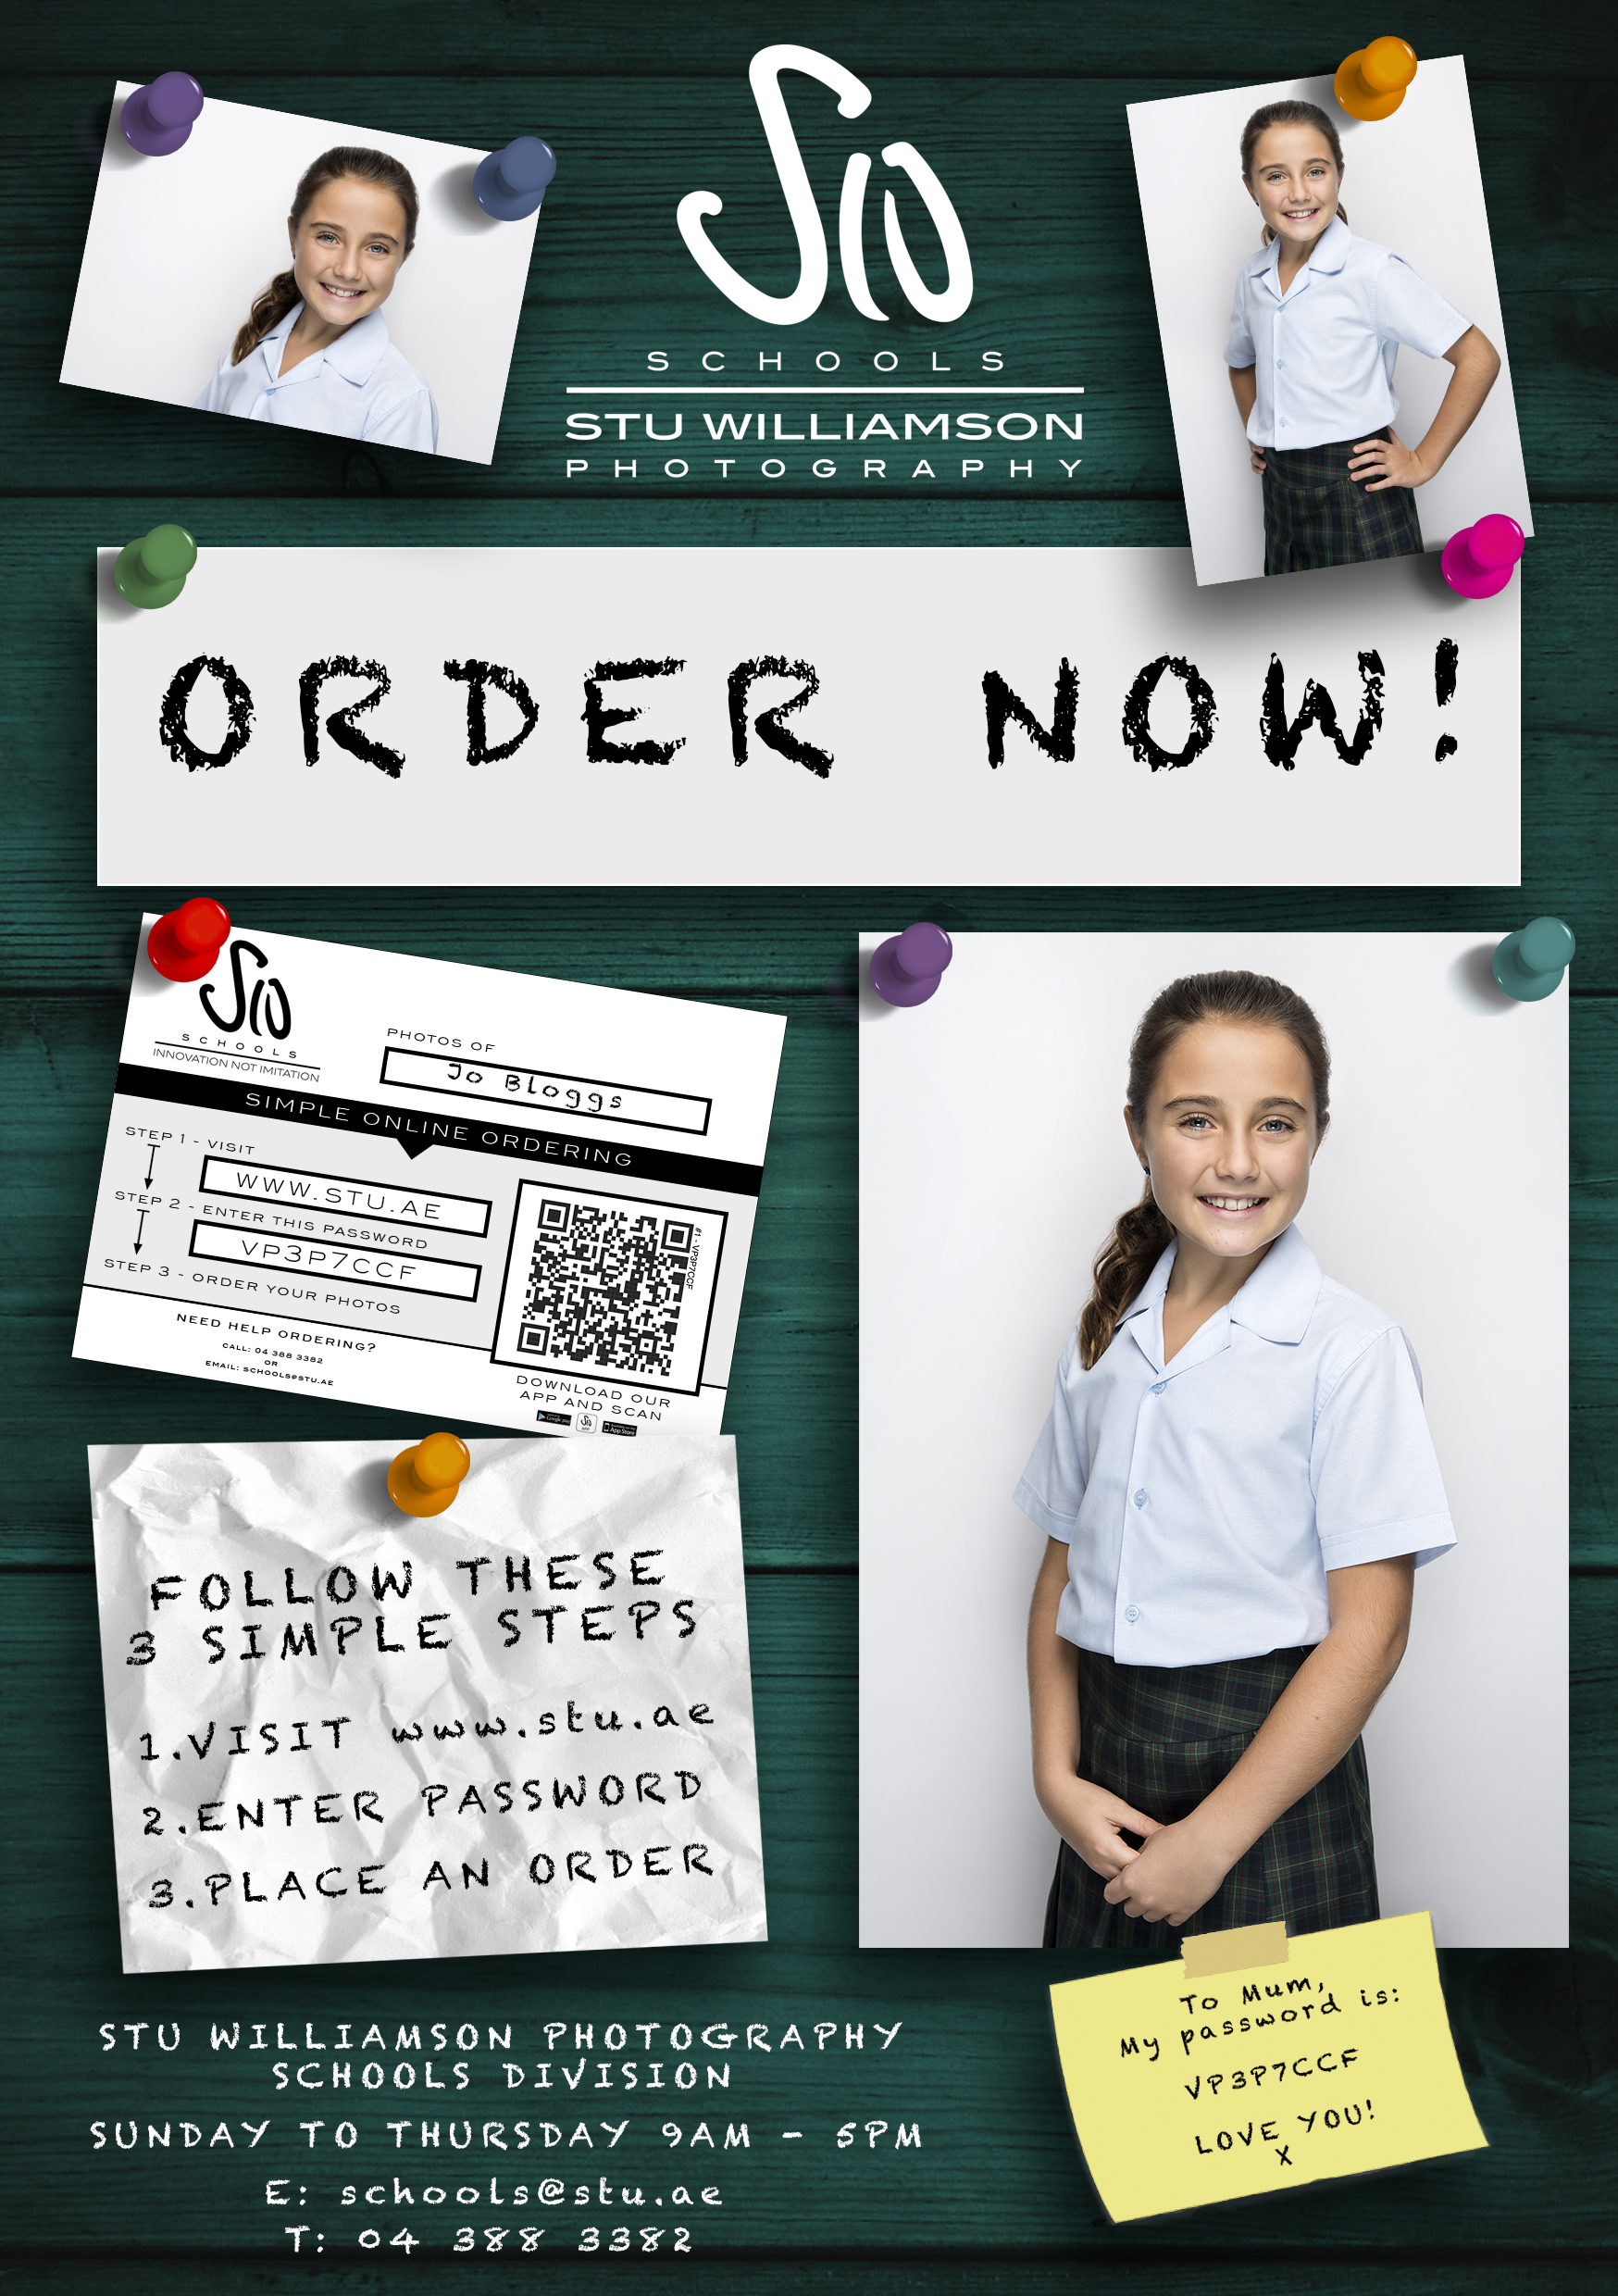 School Photos Now Available